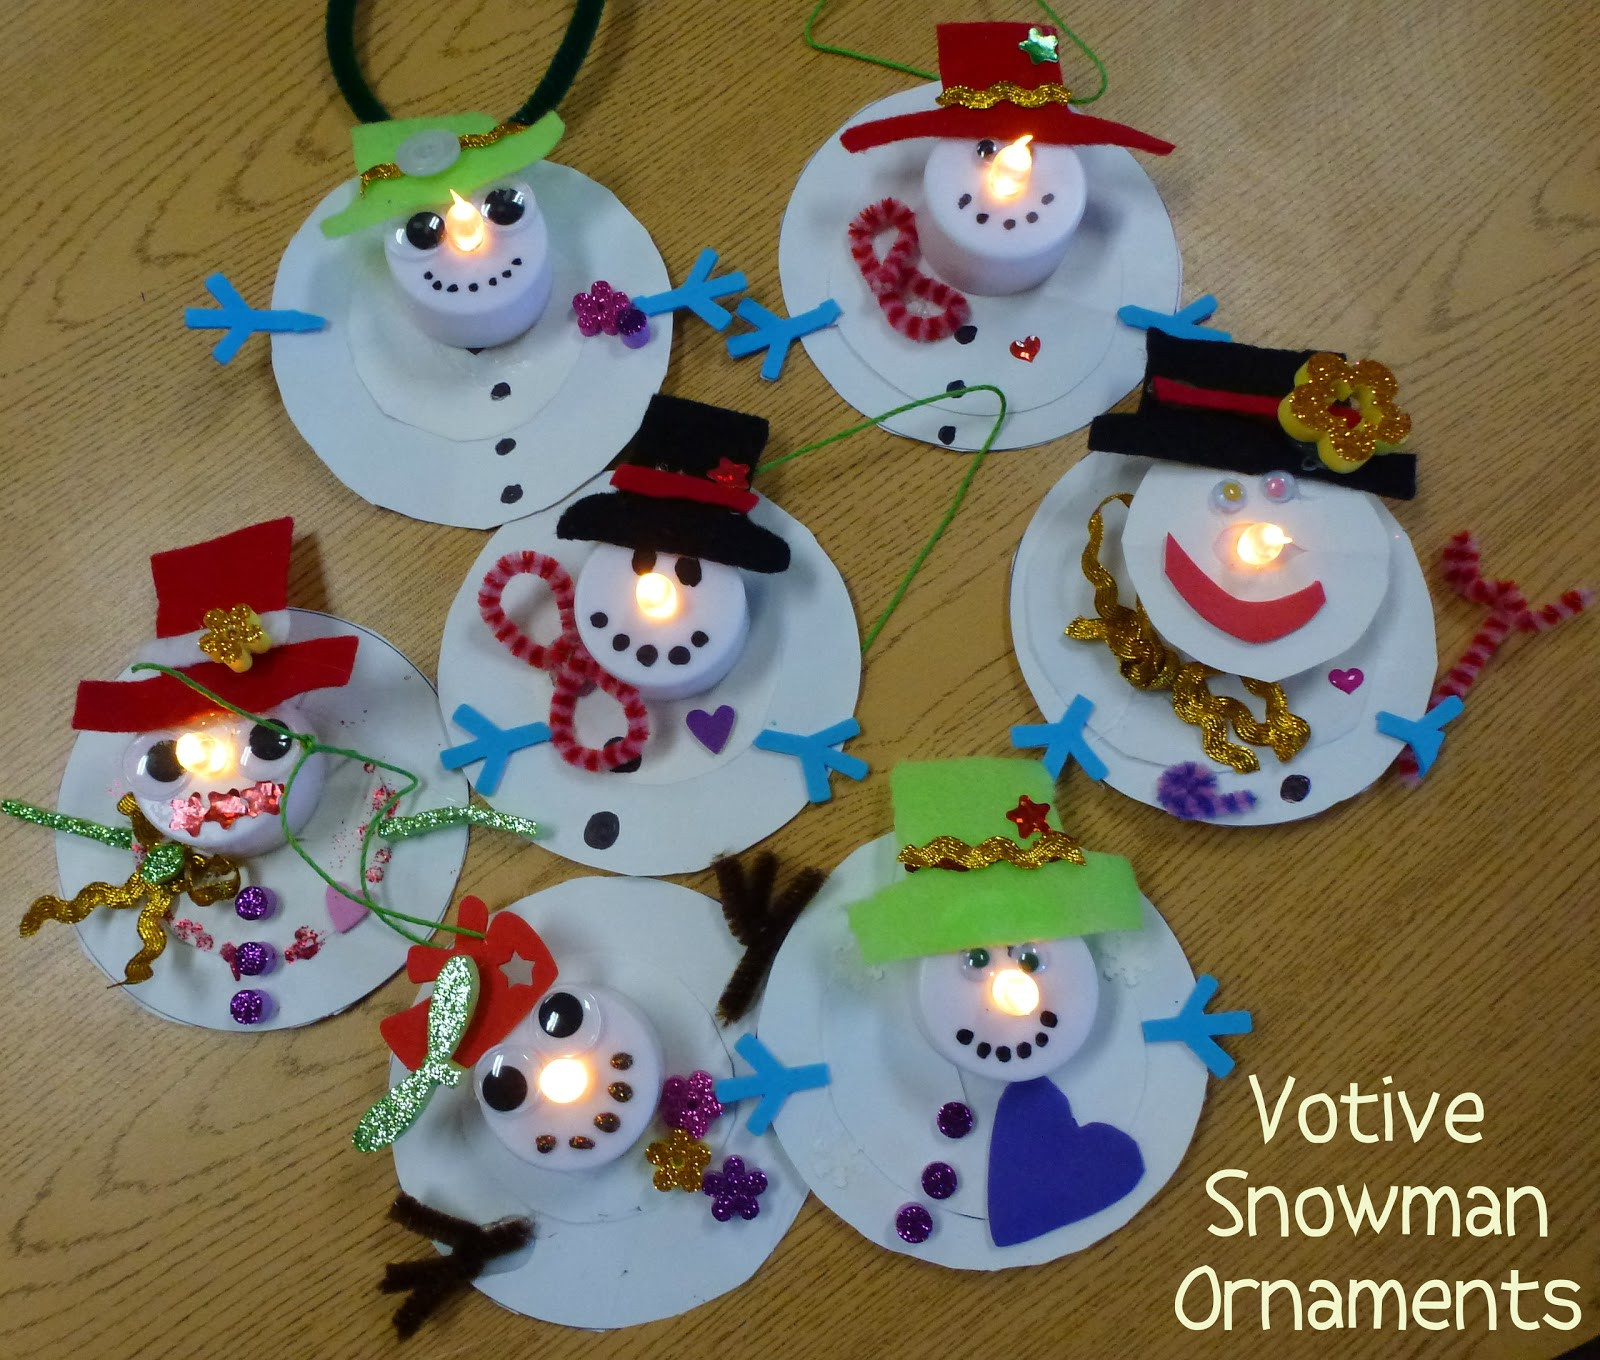 Choices for Children Votive Snowman Ornaments